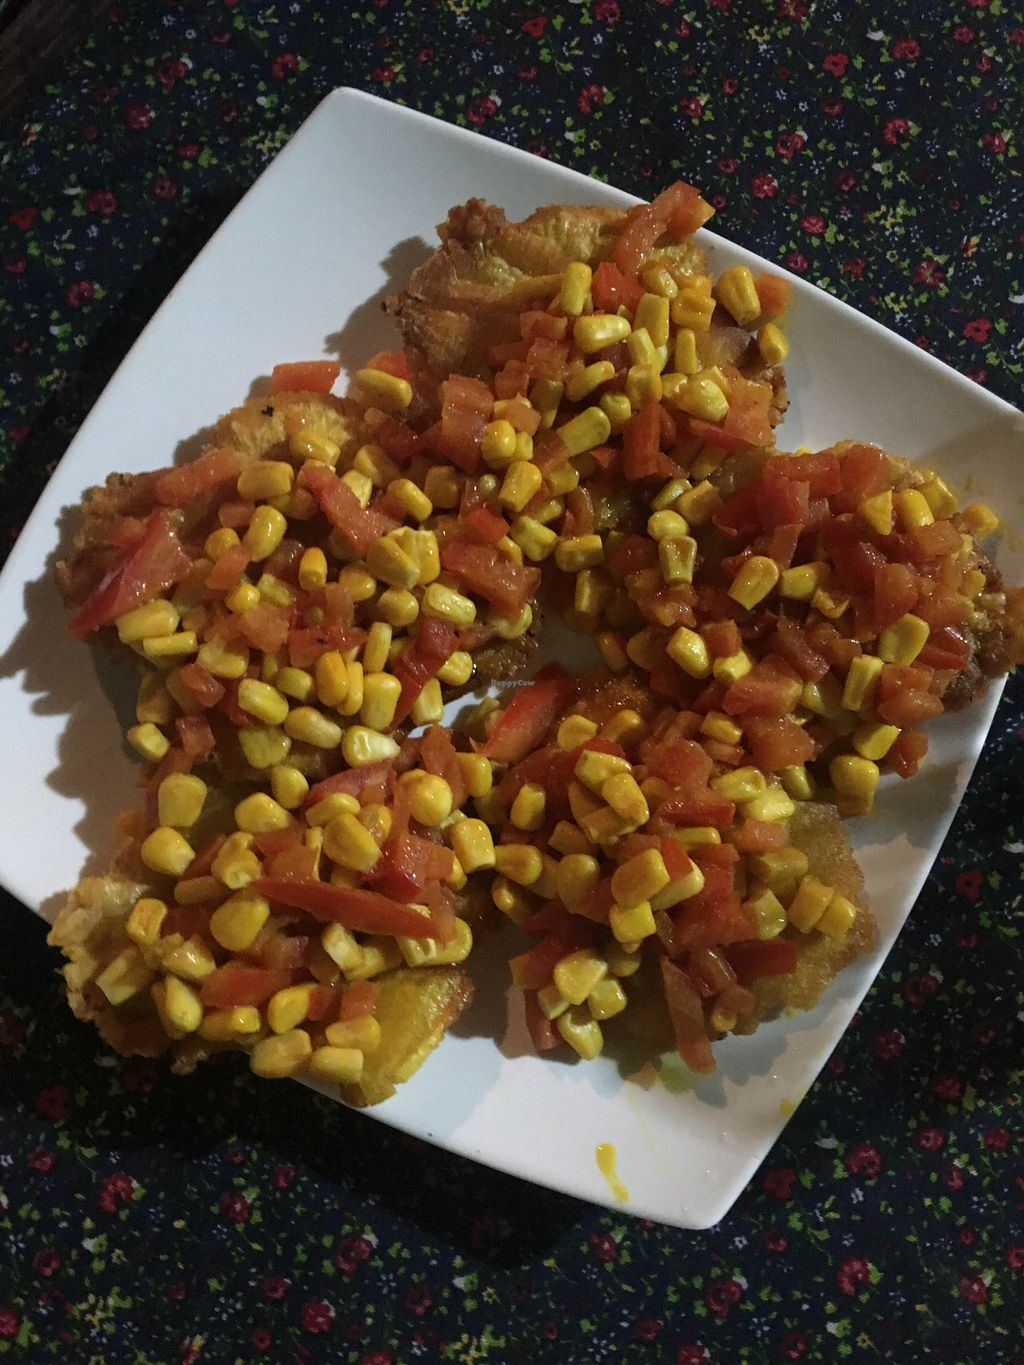 """Photo of Govinda's Restaurante Vegetarian Food & Yoga  by <a href=""""/members/profile/Veggierad"""">Veggierad</a> <br/>Plantain with sweetcorn and tomato  <br/> May 19, 2018  - <a href='/contact/abuse/image/38511/402006'>Report</a>"""